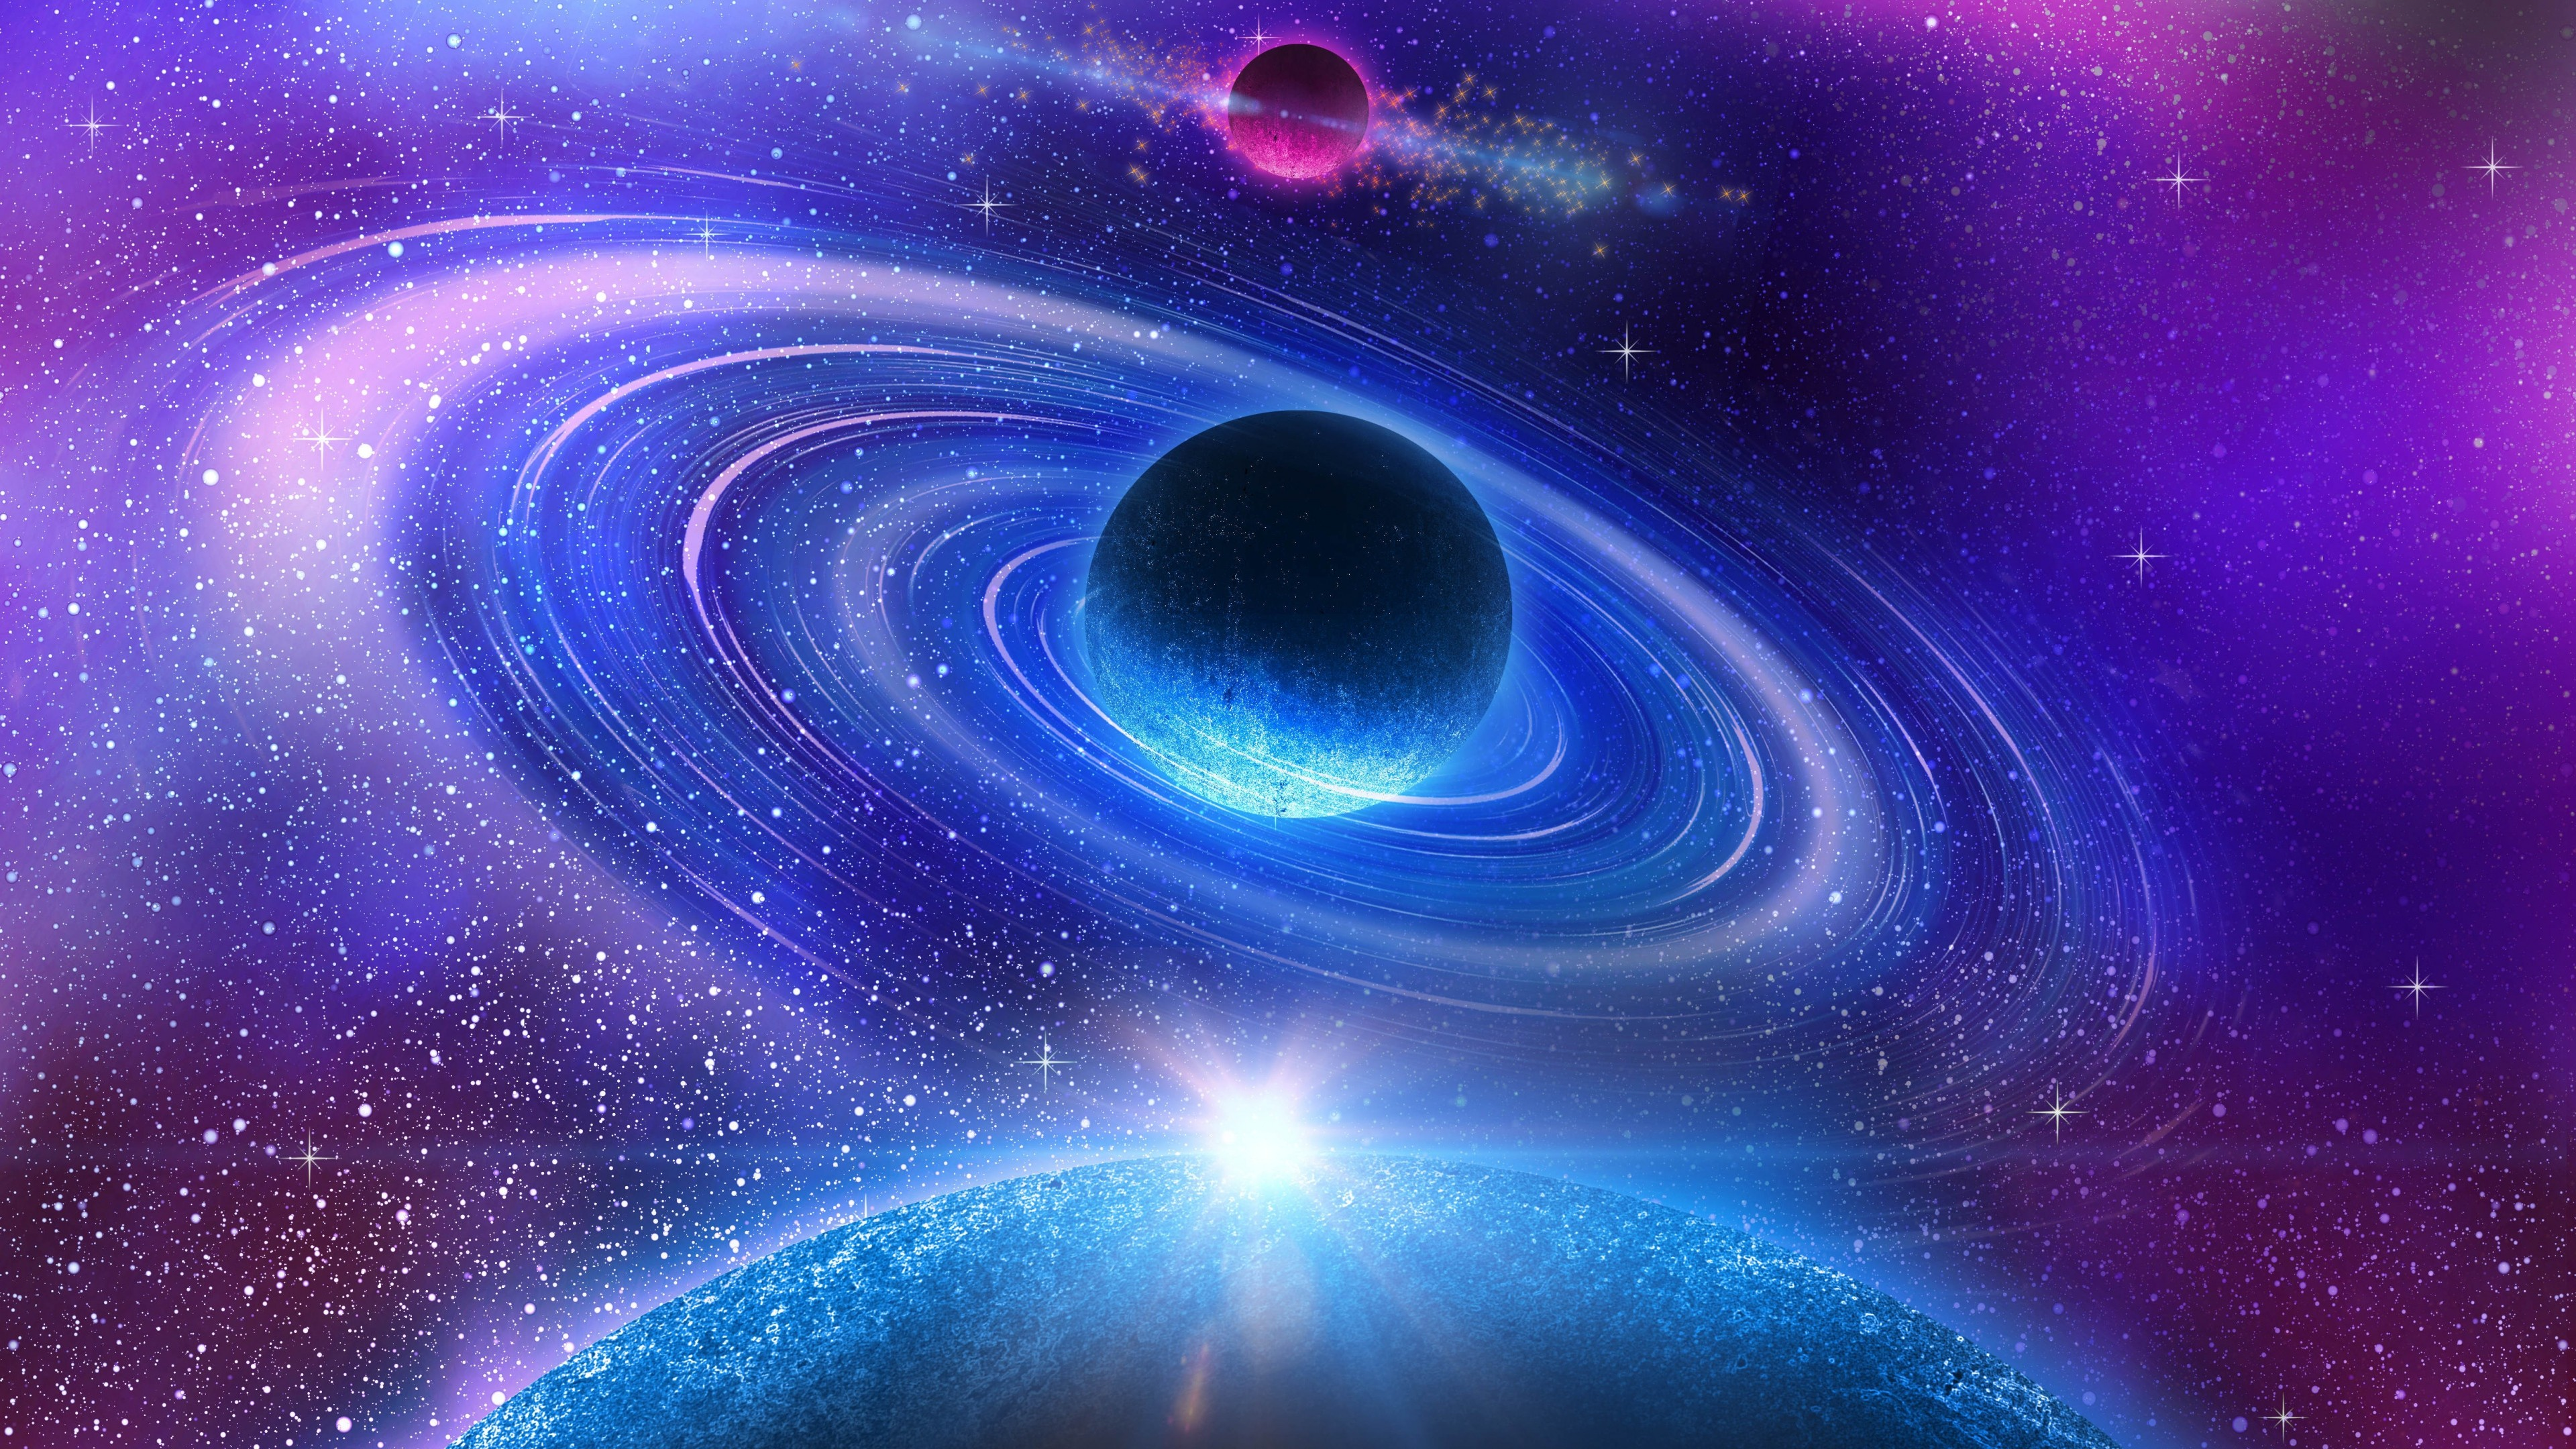 High Resolution Wallpaper 4k: Space Wallpaper 4K ·① Download Free Awesome High